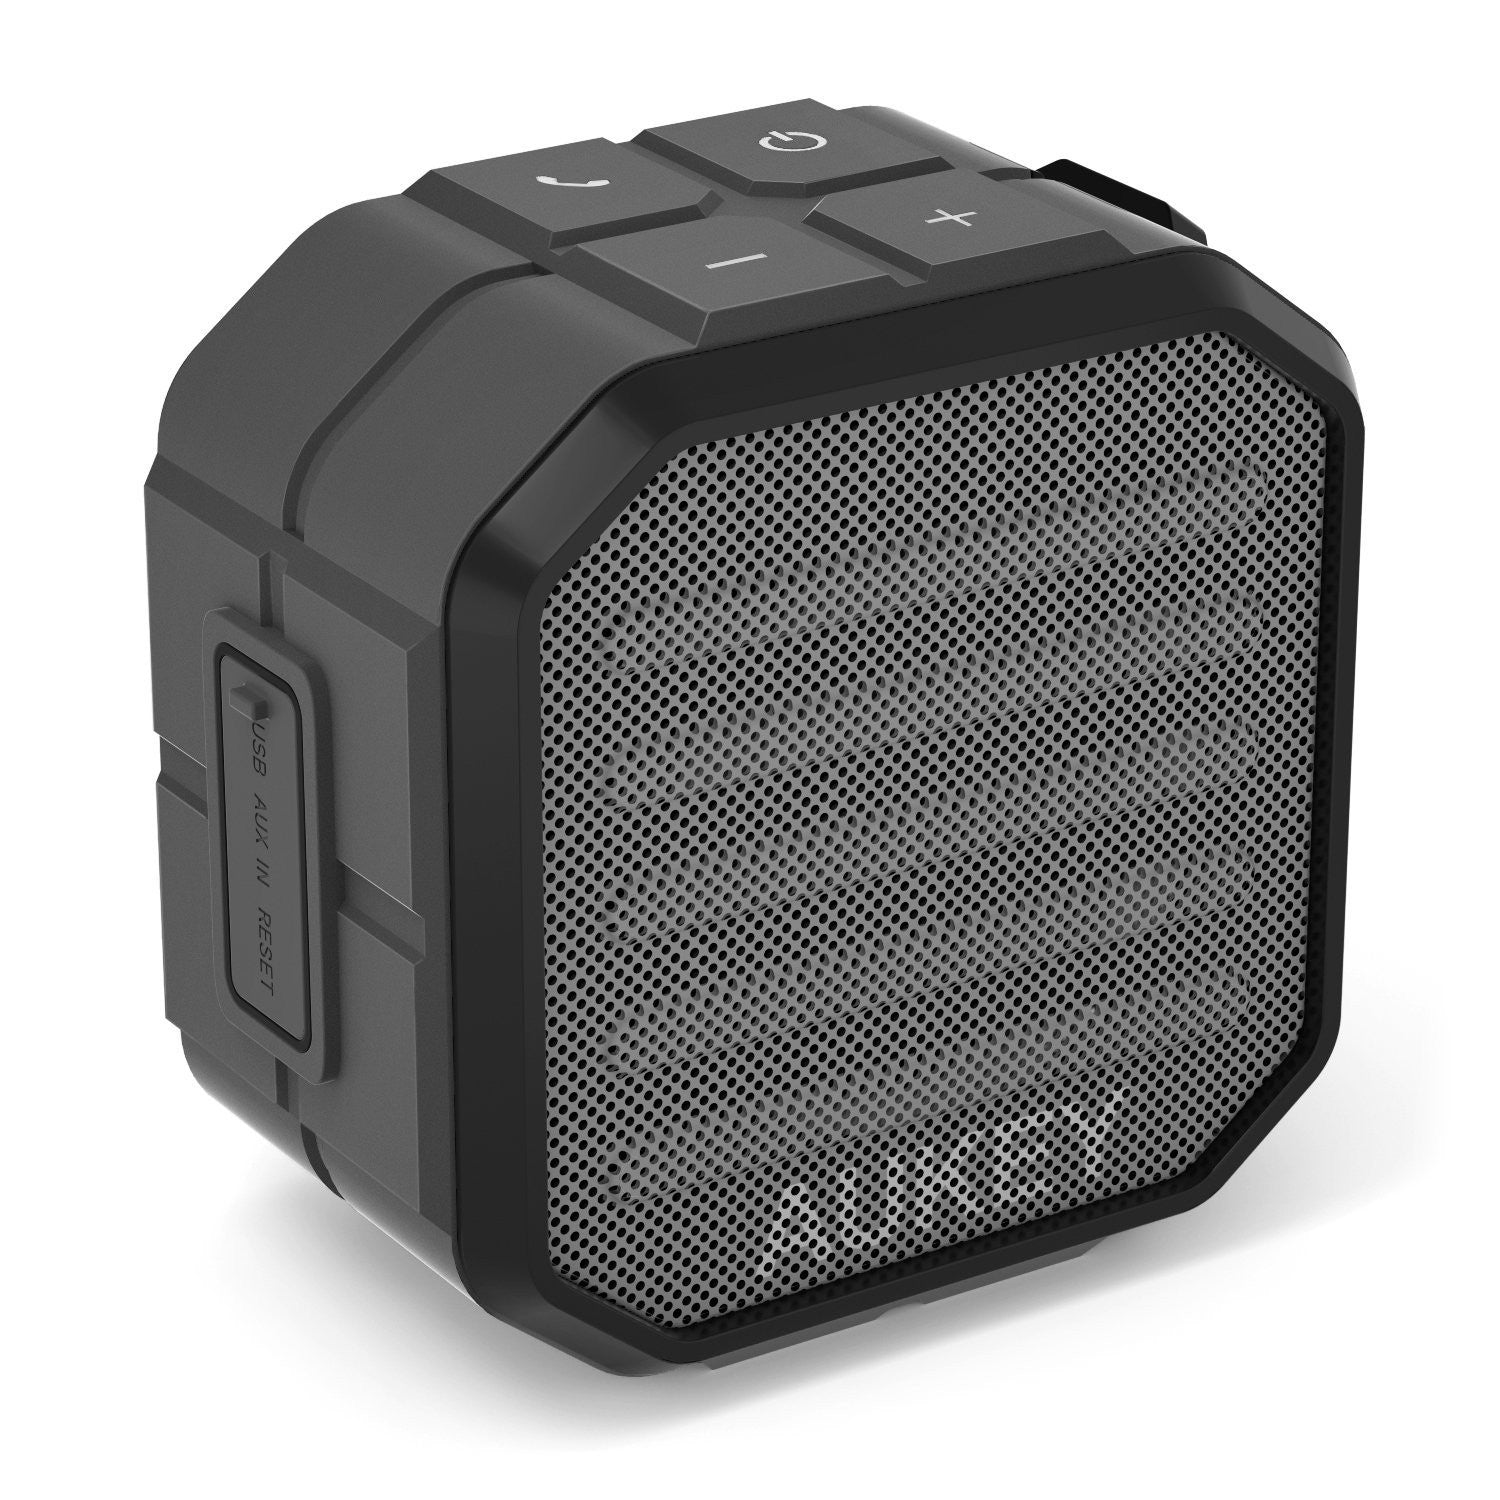 SK-M13 Portable outdoor wireless bluetooth speaker with enhance bass